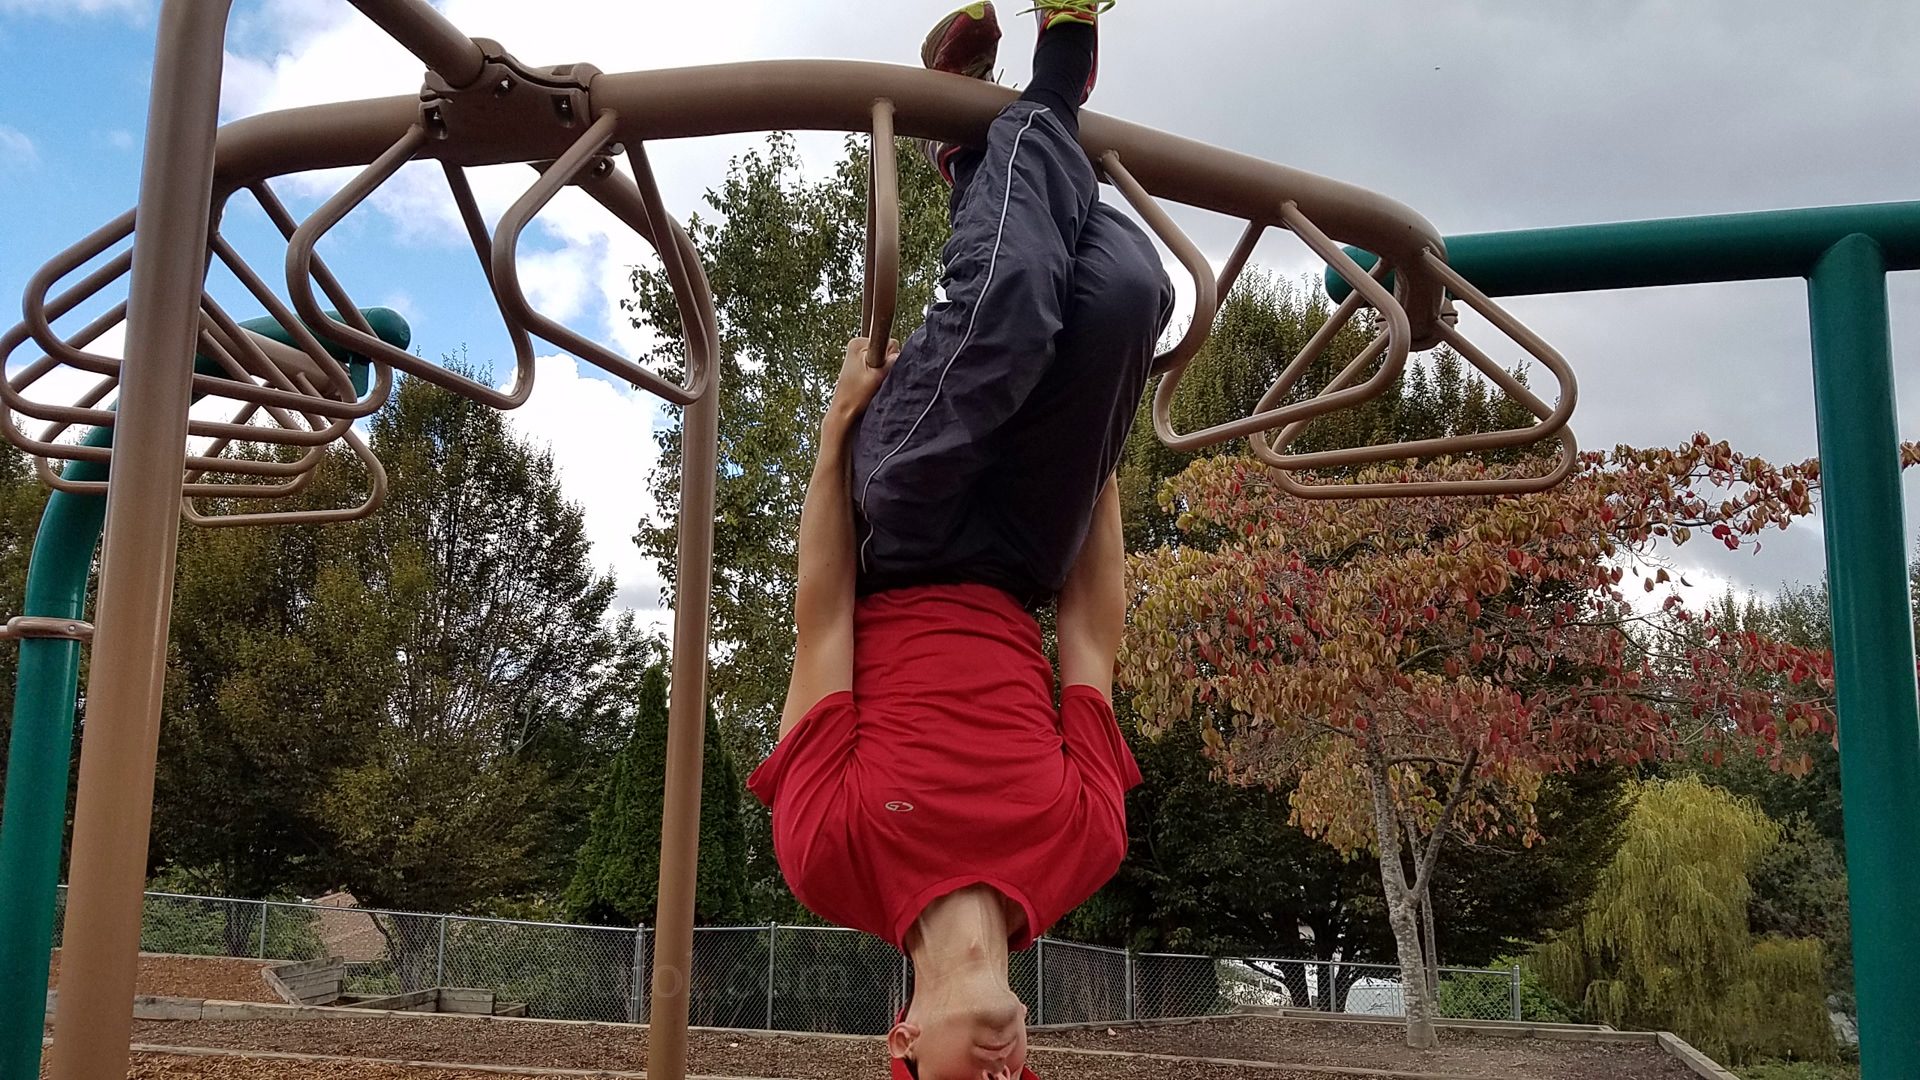 Bar exercises upside down